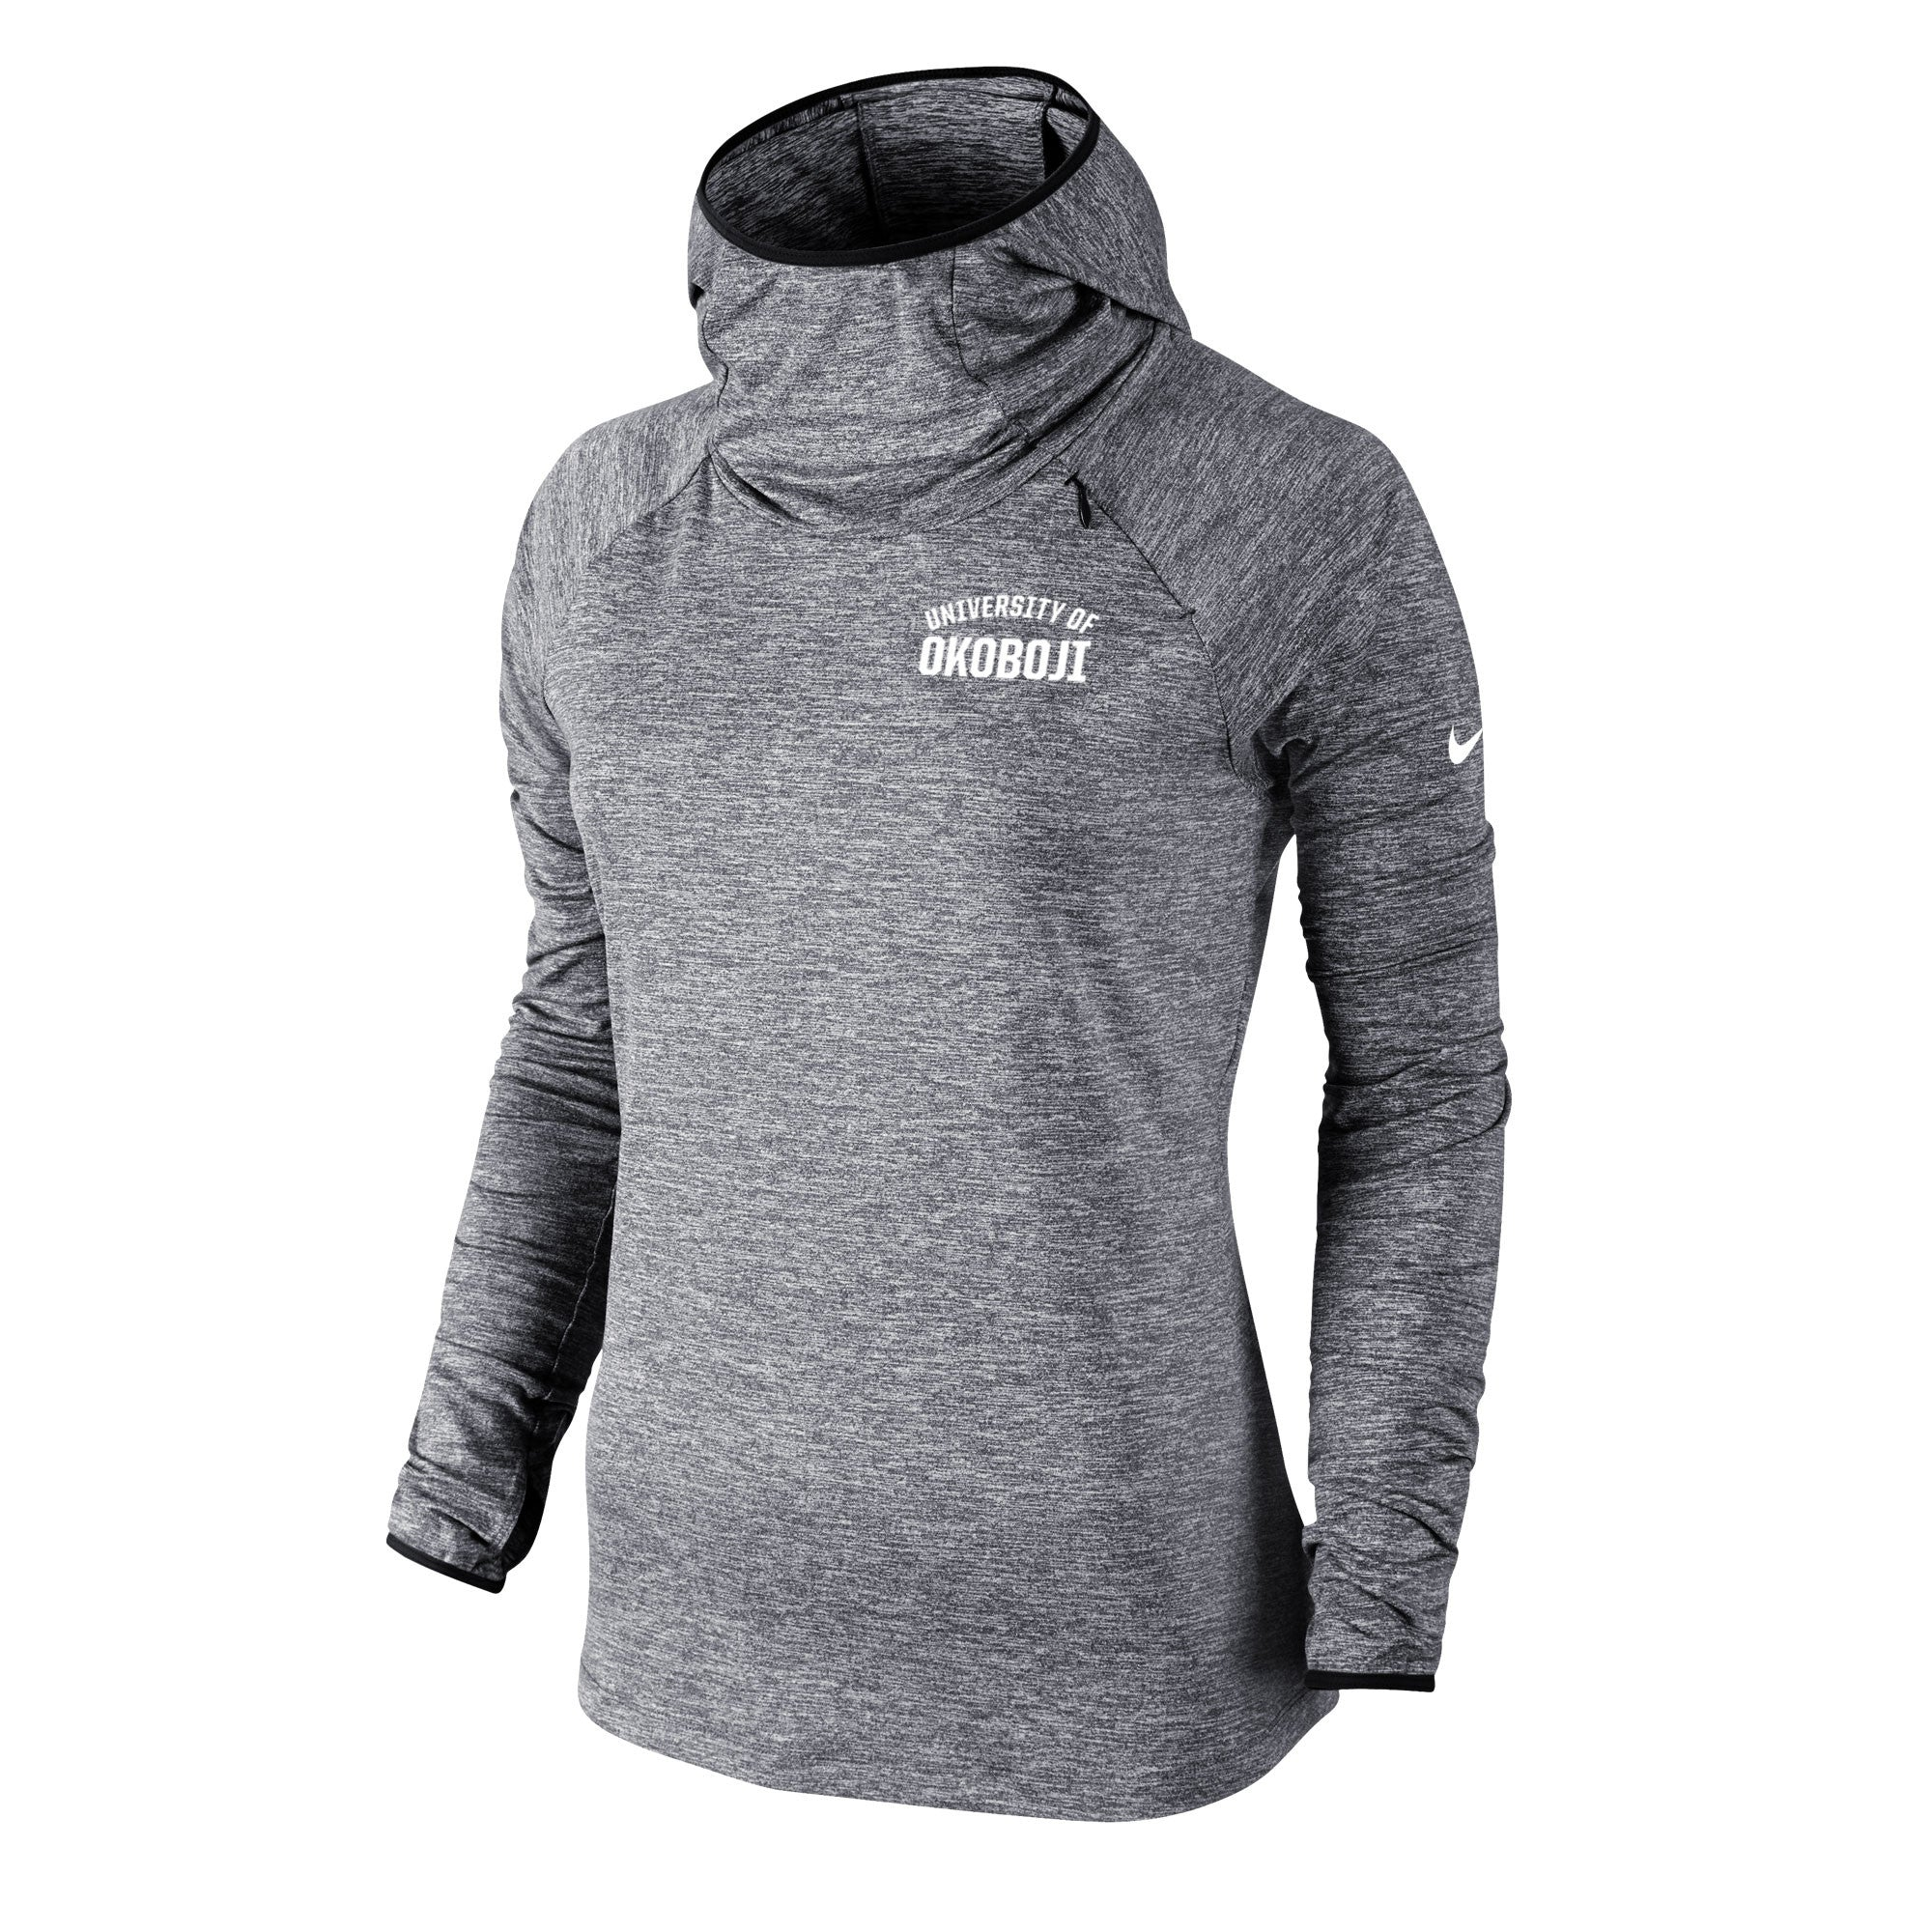 Women's Nike Heathered Element Hoody - Carbon Heather Grey